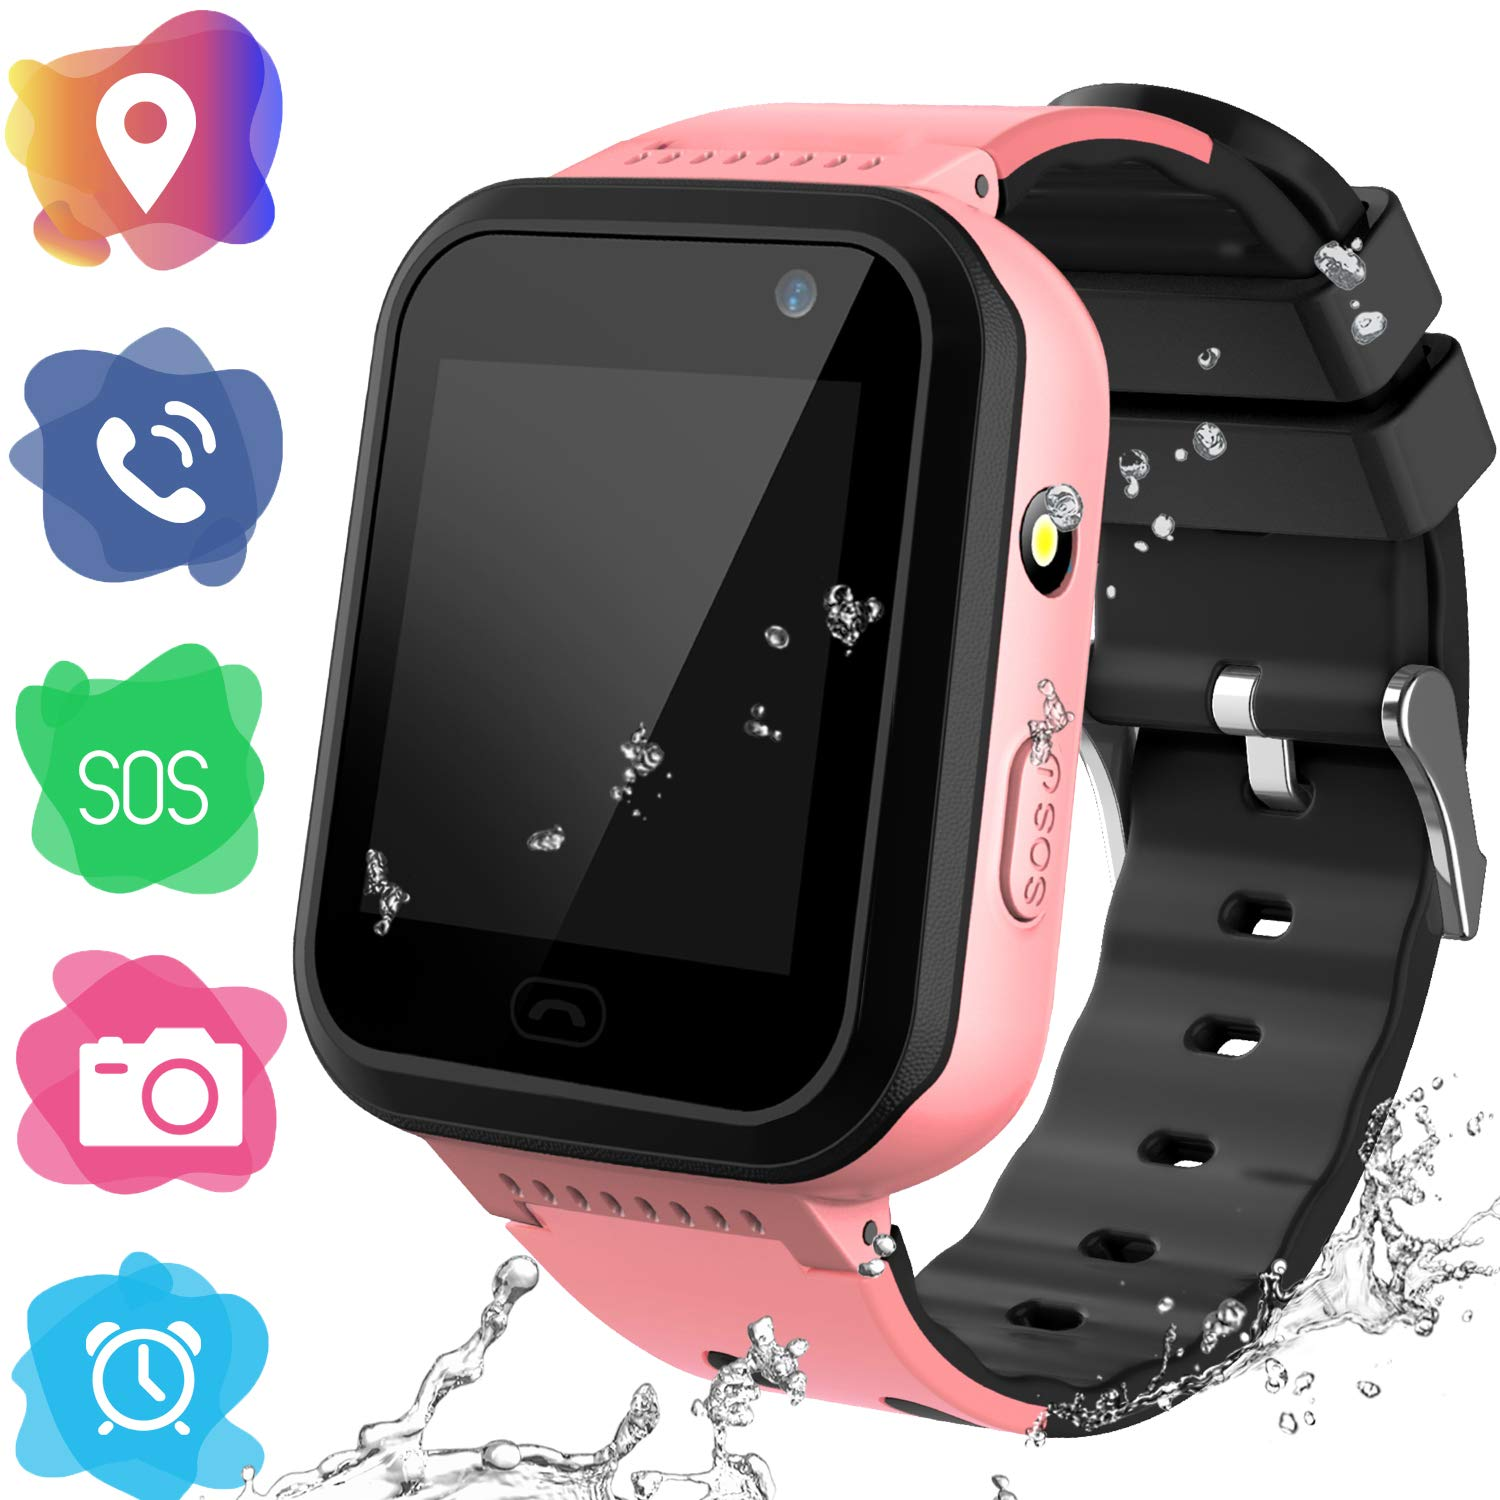 Kids Smartwatch Phone for Girls Boys - Children Touch Phone Wrist Watch with SOS Call Voice Intercom Camera Flashlight Voice Maths Game for Students Age 4-12 (01 V7 Pink, LBS Tracker Watch) by YENISEY